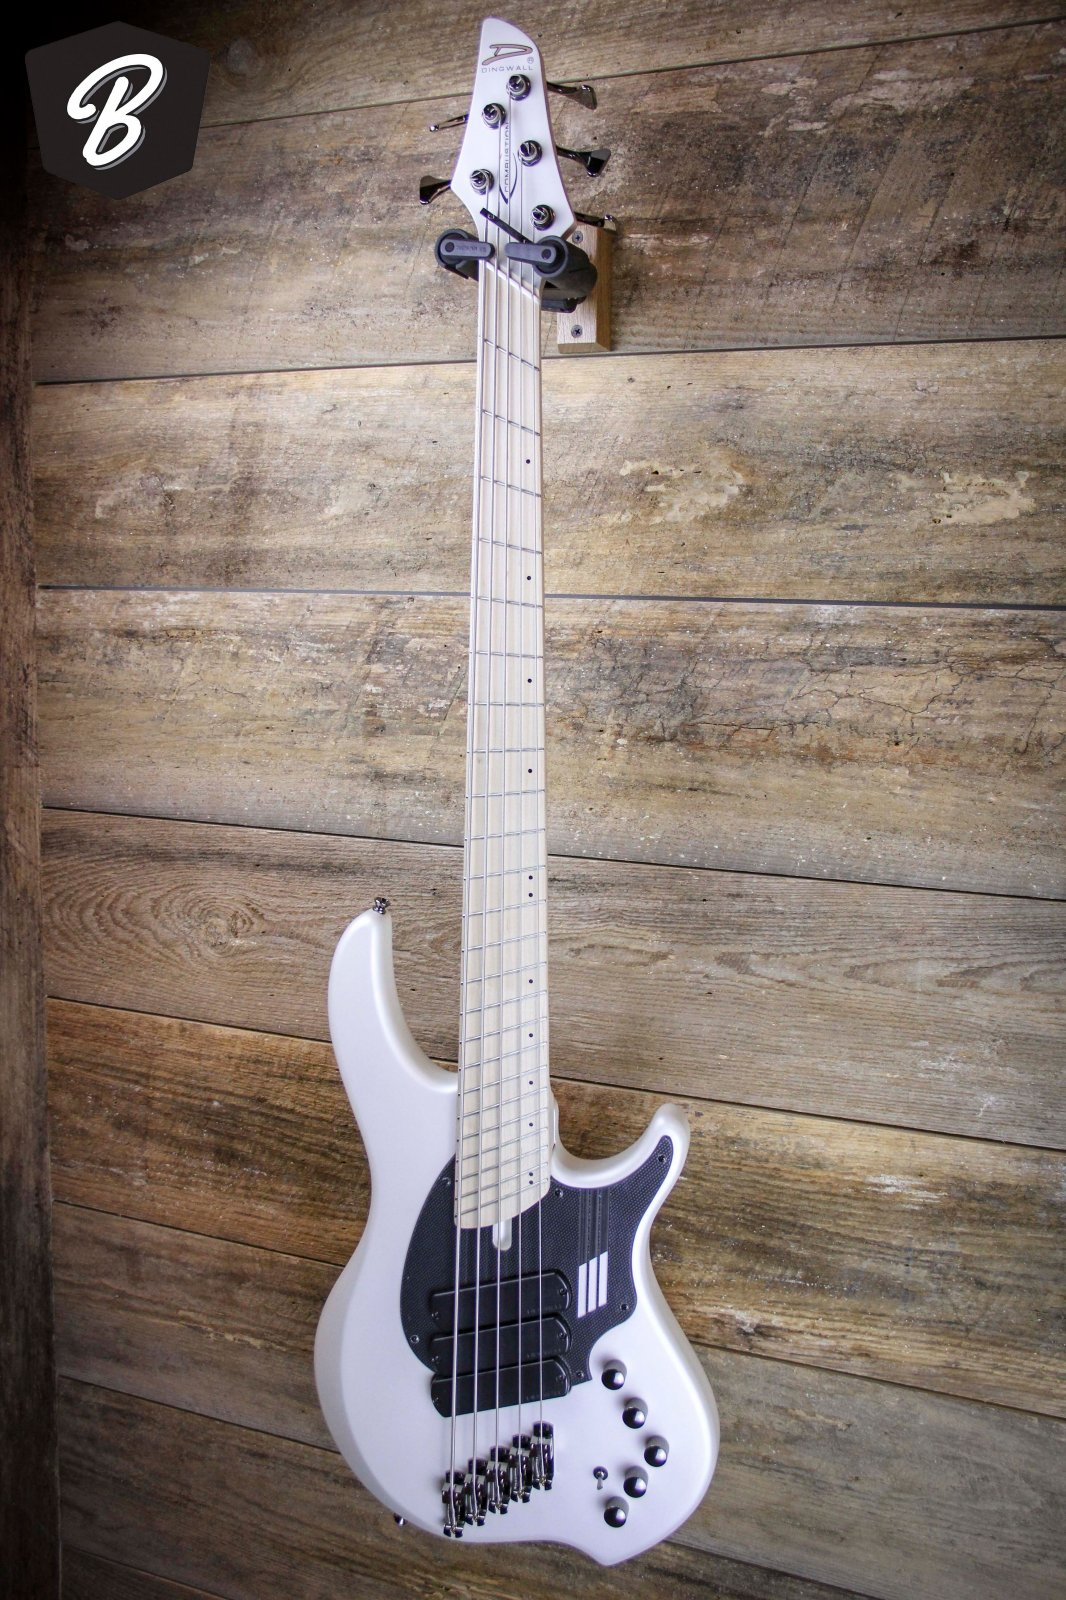 Dingwall NG-3 5 String in Ducati White & Carbon Fiber Print Pickguard